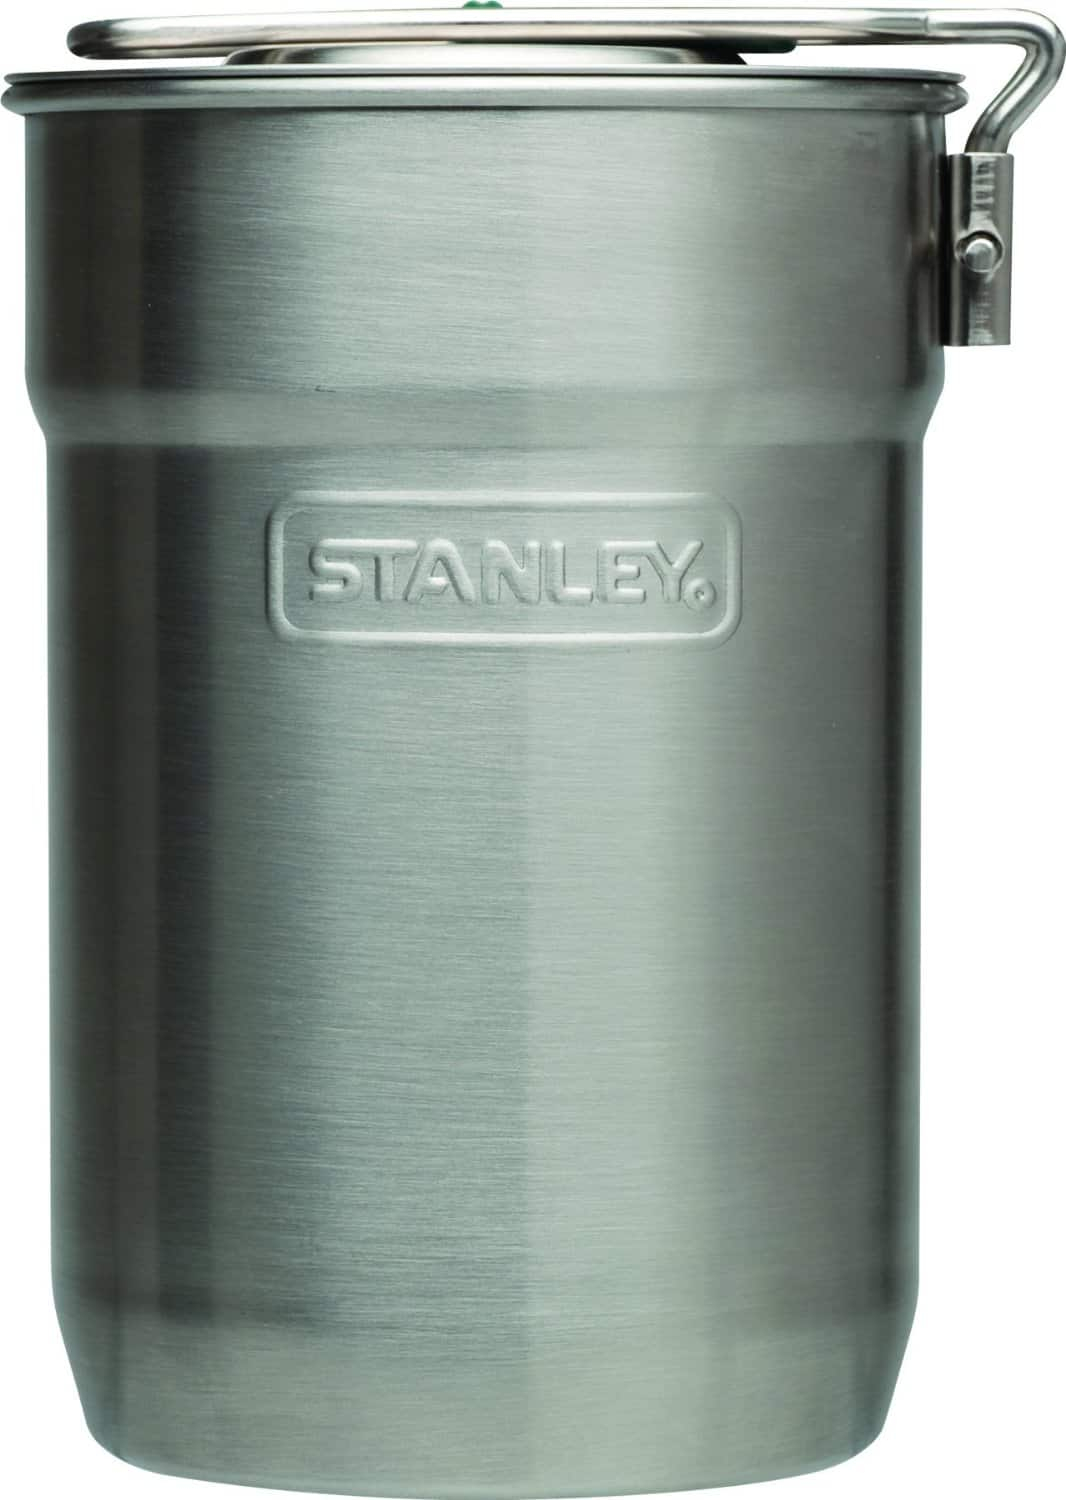 24oz Stanley Adventure Camp Cook Set (Stainless Steel)  $11.35 - Back in stock at Amazon